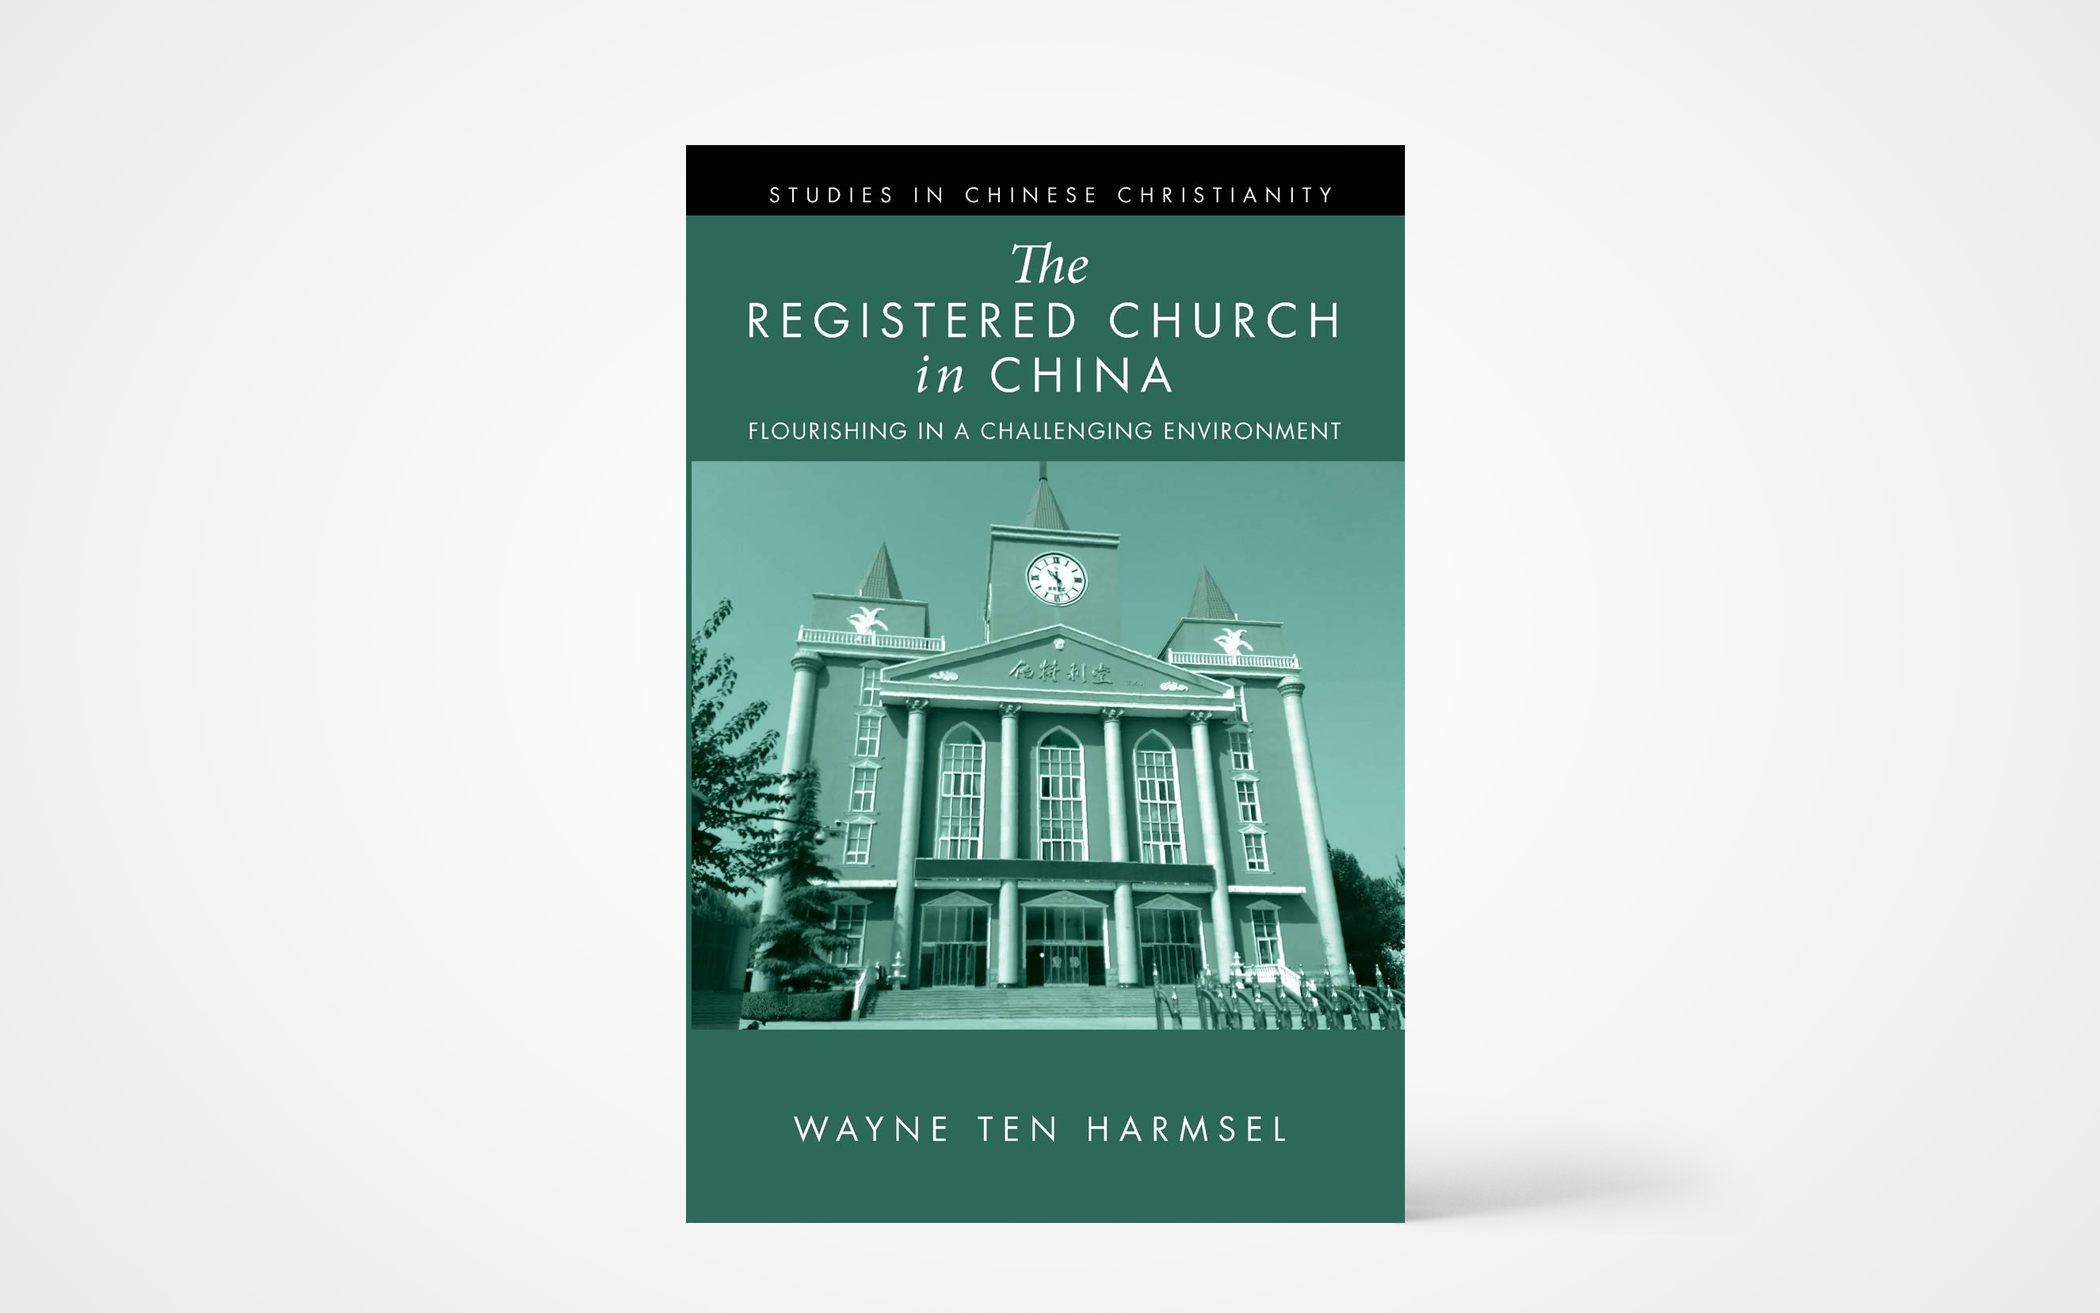 The Registered Church in China